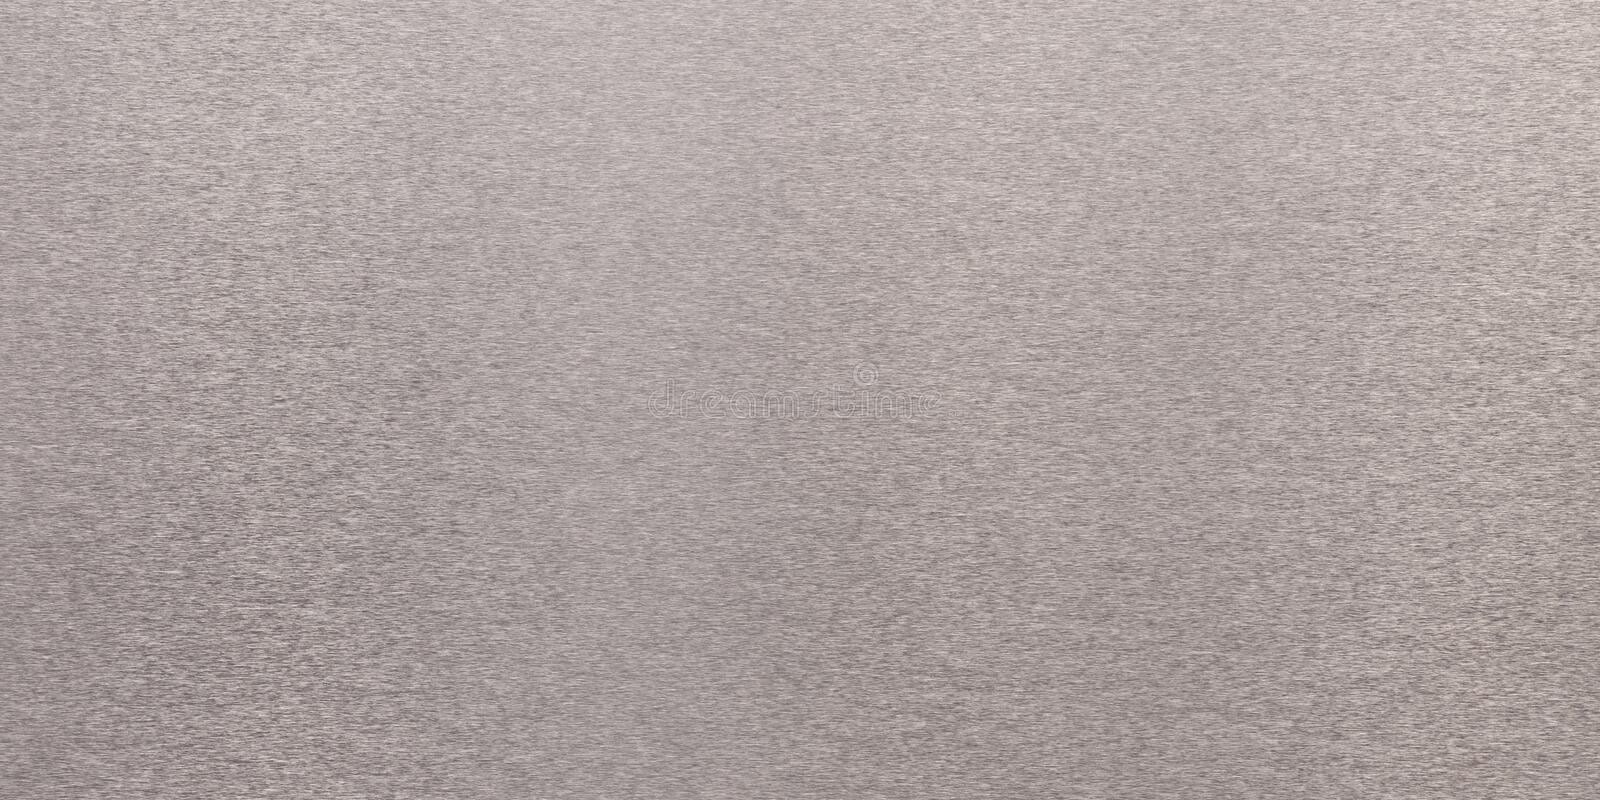 Seamless metallic texture and pattern for background template royalty free stock image